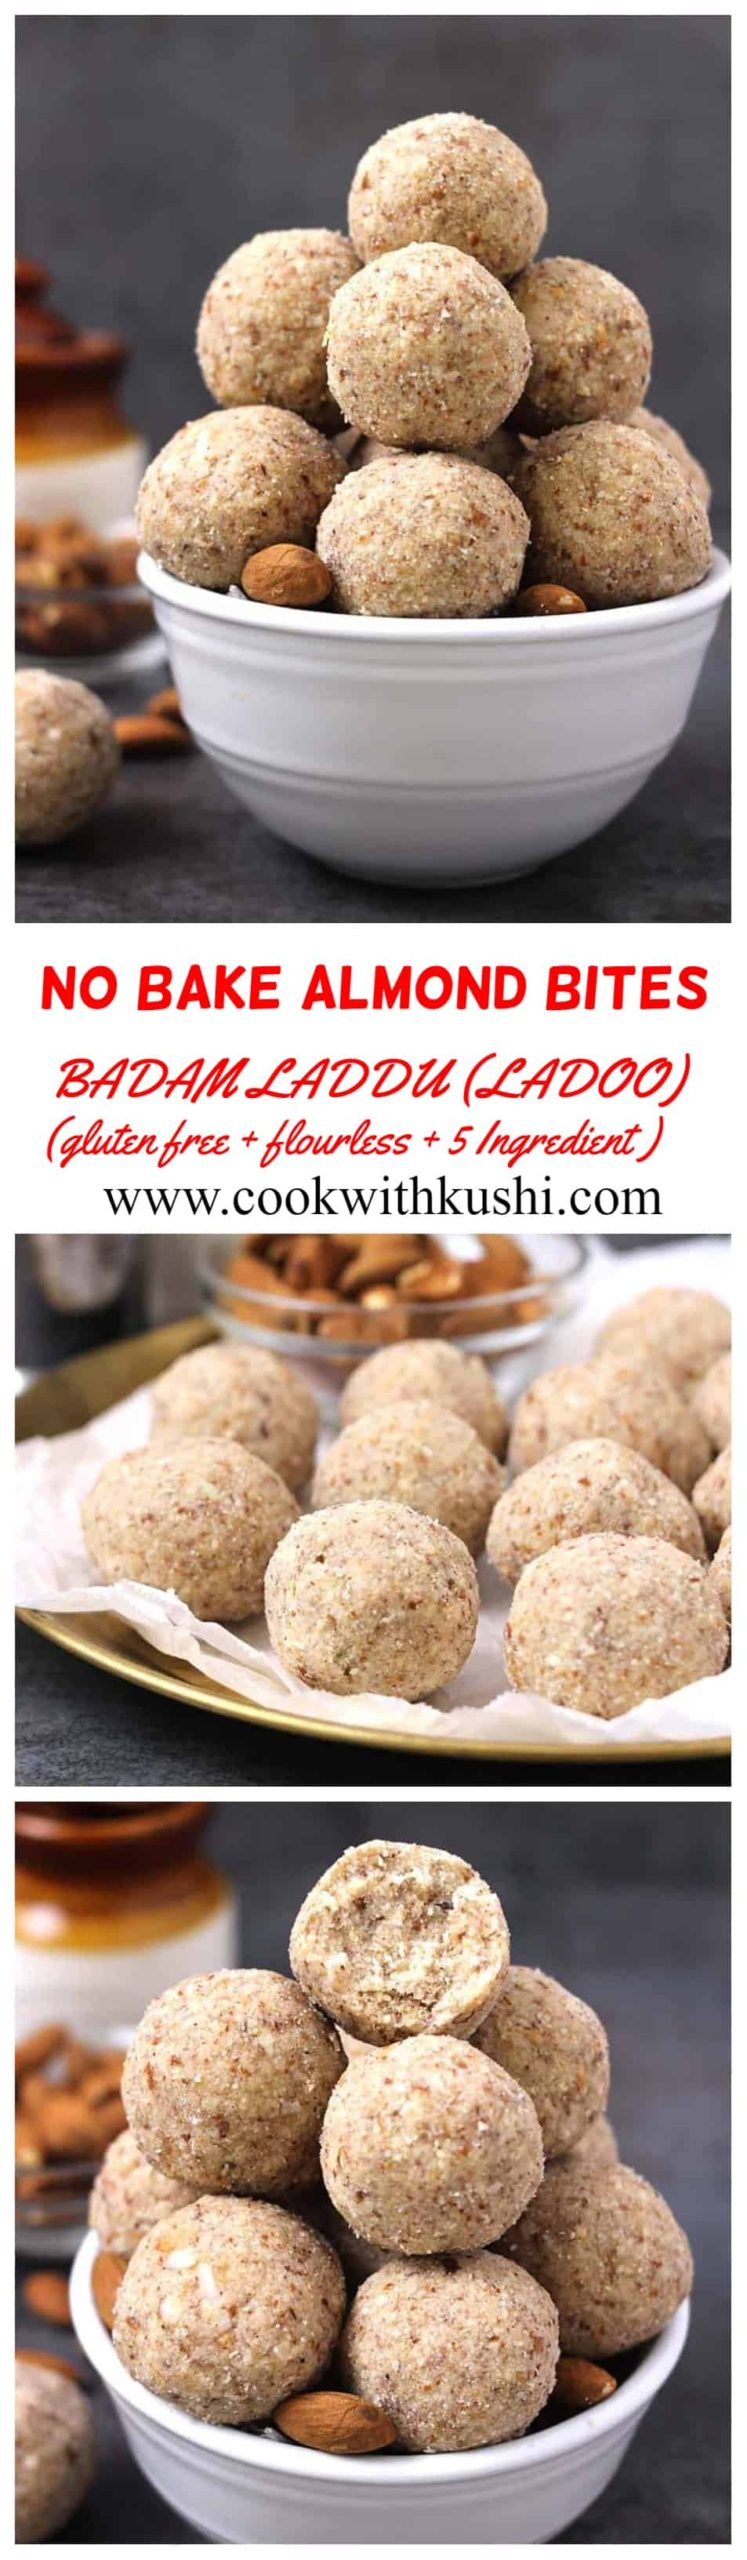 Badam Laddu (Ladoo) or Almond bites are delicious, melt in mouth easy to make, no bake Indian sweet prepared using 5 ingredients in less than 30 minutes. This is also flourless, gluten free, paleo #indiansweets #almonddesserts #laddu #ladoo #mithai #navratri #diwali #prasad #vrat